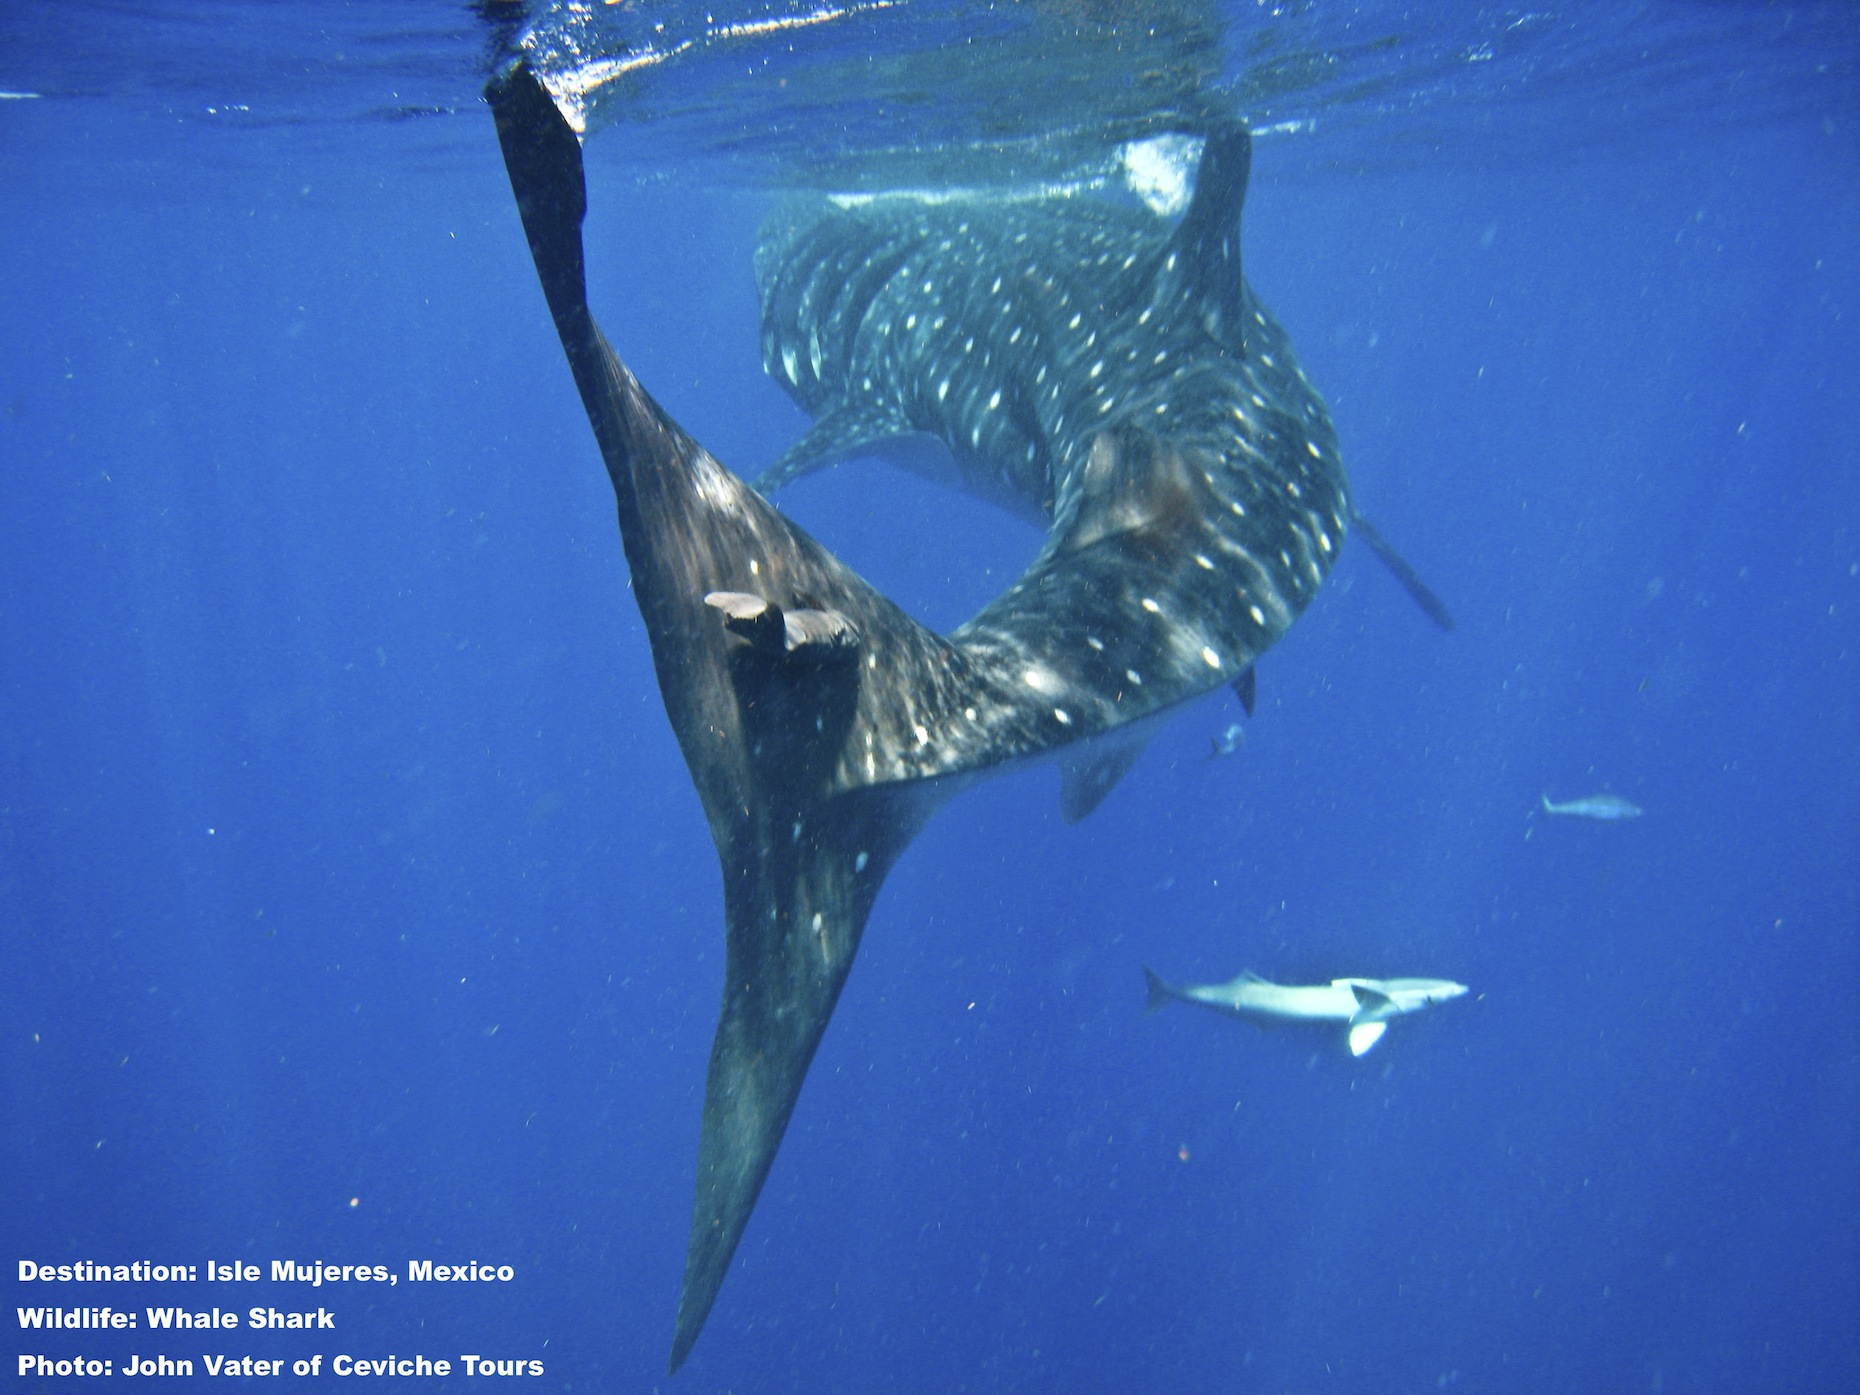 This tail can do serious damage. Annoyed whale sharks have been known to flick their massive tail at something bothering them. Since an adult whale shark can be 273 times the weight of 150 pound (68k) human swimmer, it is best to give them space. Image: Courtesy of John Vater, Ceviche Tours, Isla Mujeres, Mexoco.